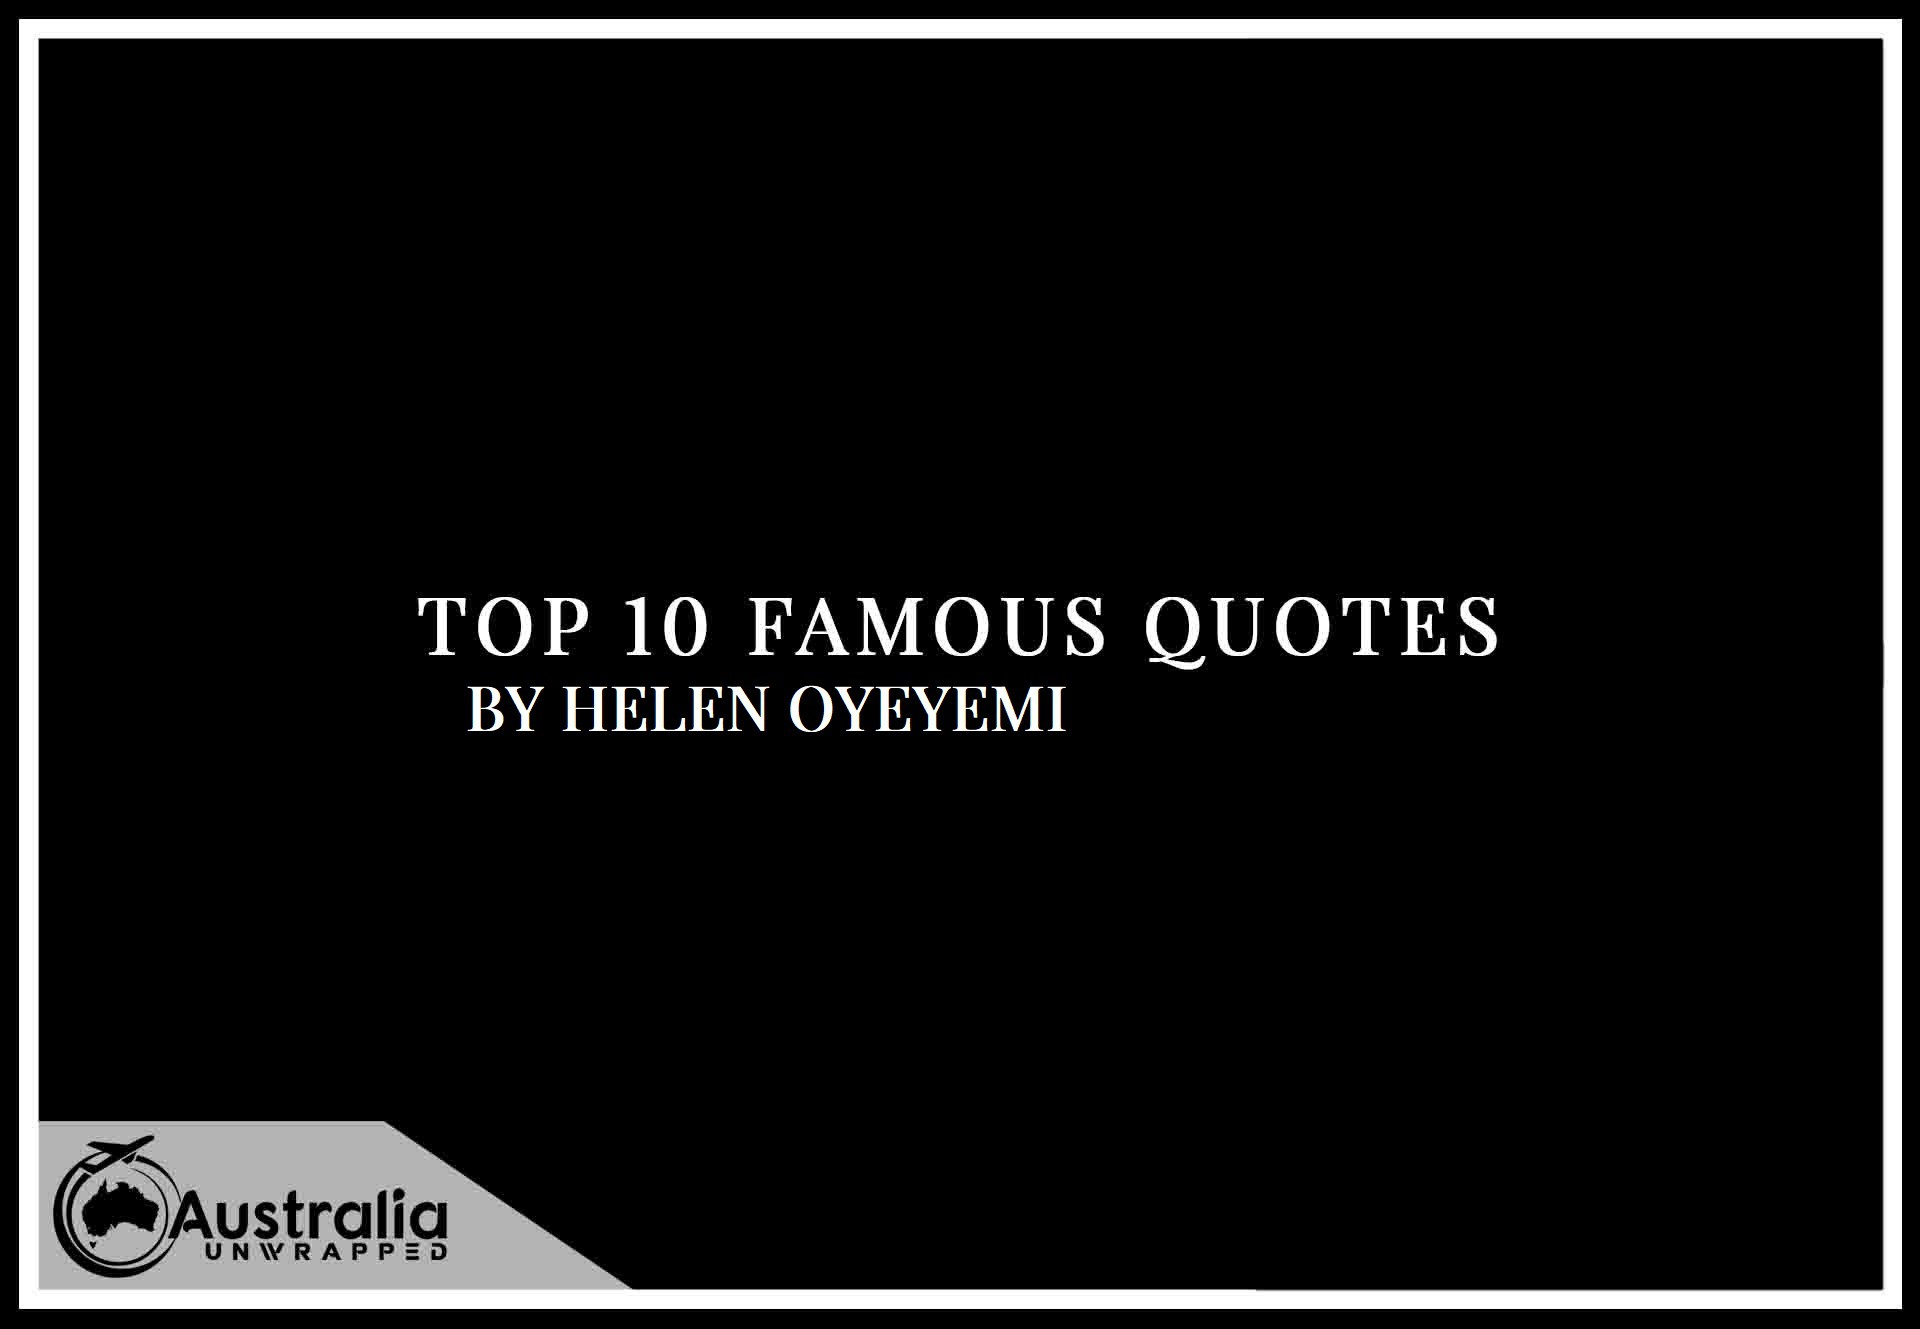 Top 10 Famous Quotes by Author Helen Oyeyemi